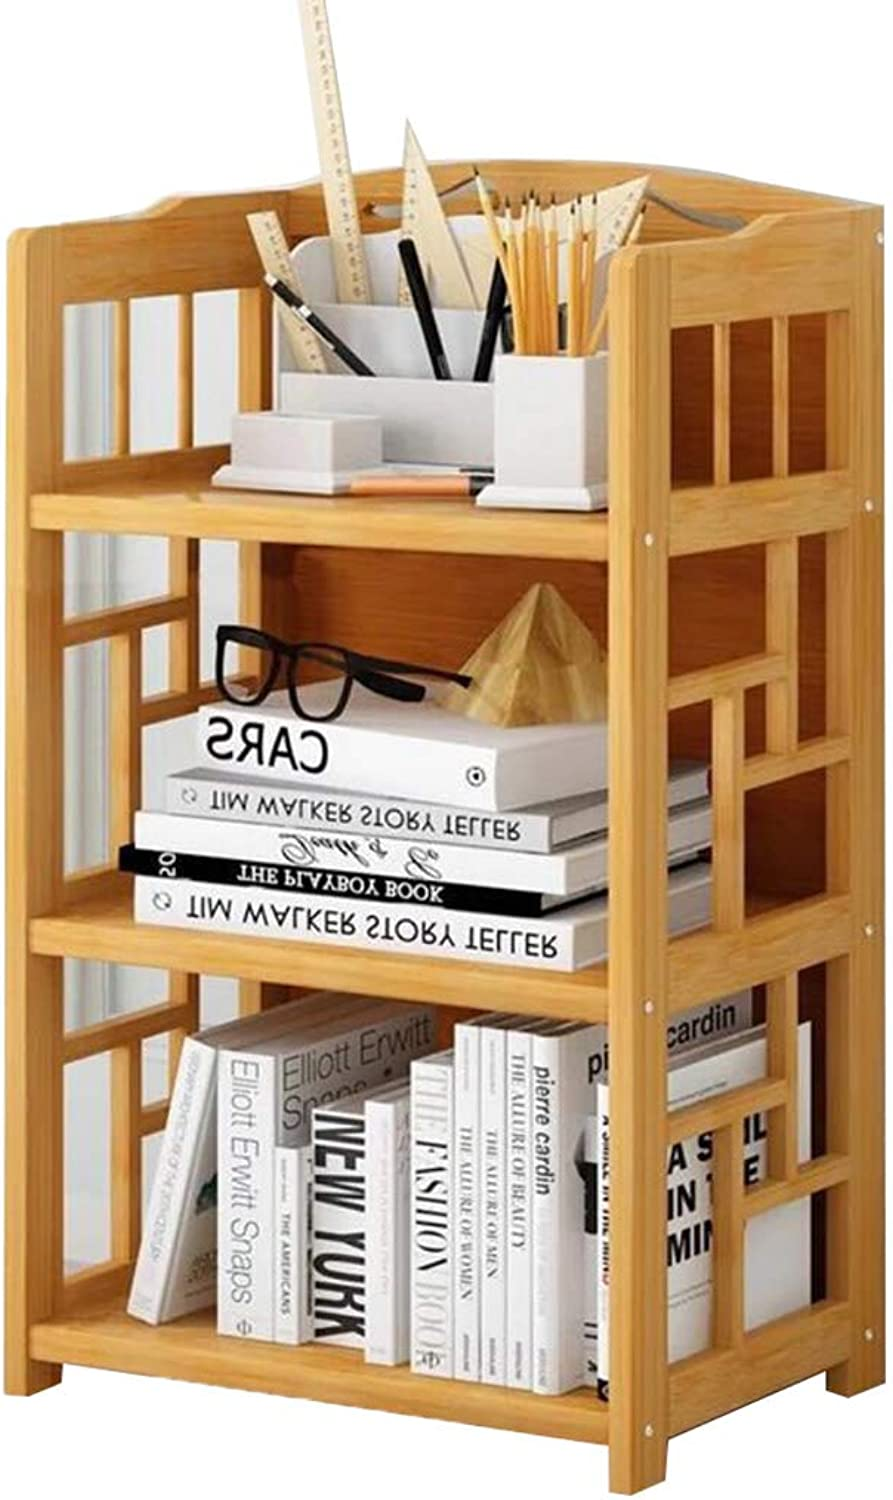 GWM Shelf Bookshelf, Floor Students Home Simple Bookcase Assembled Bamboo and Wooden Racks Three Floors (Size   50  25  80cm)